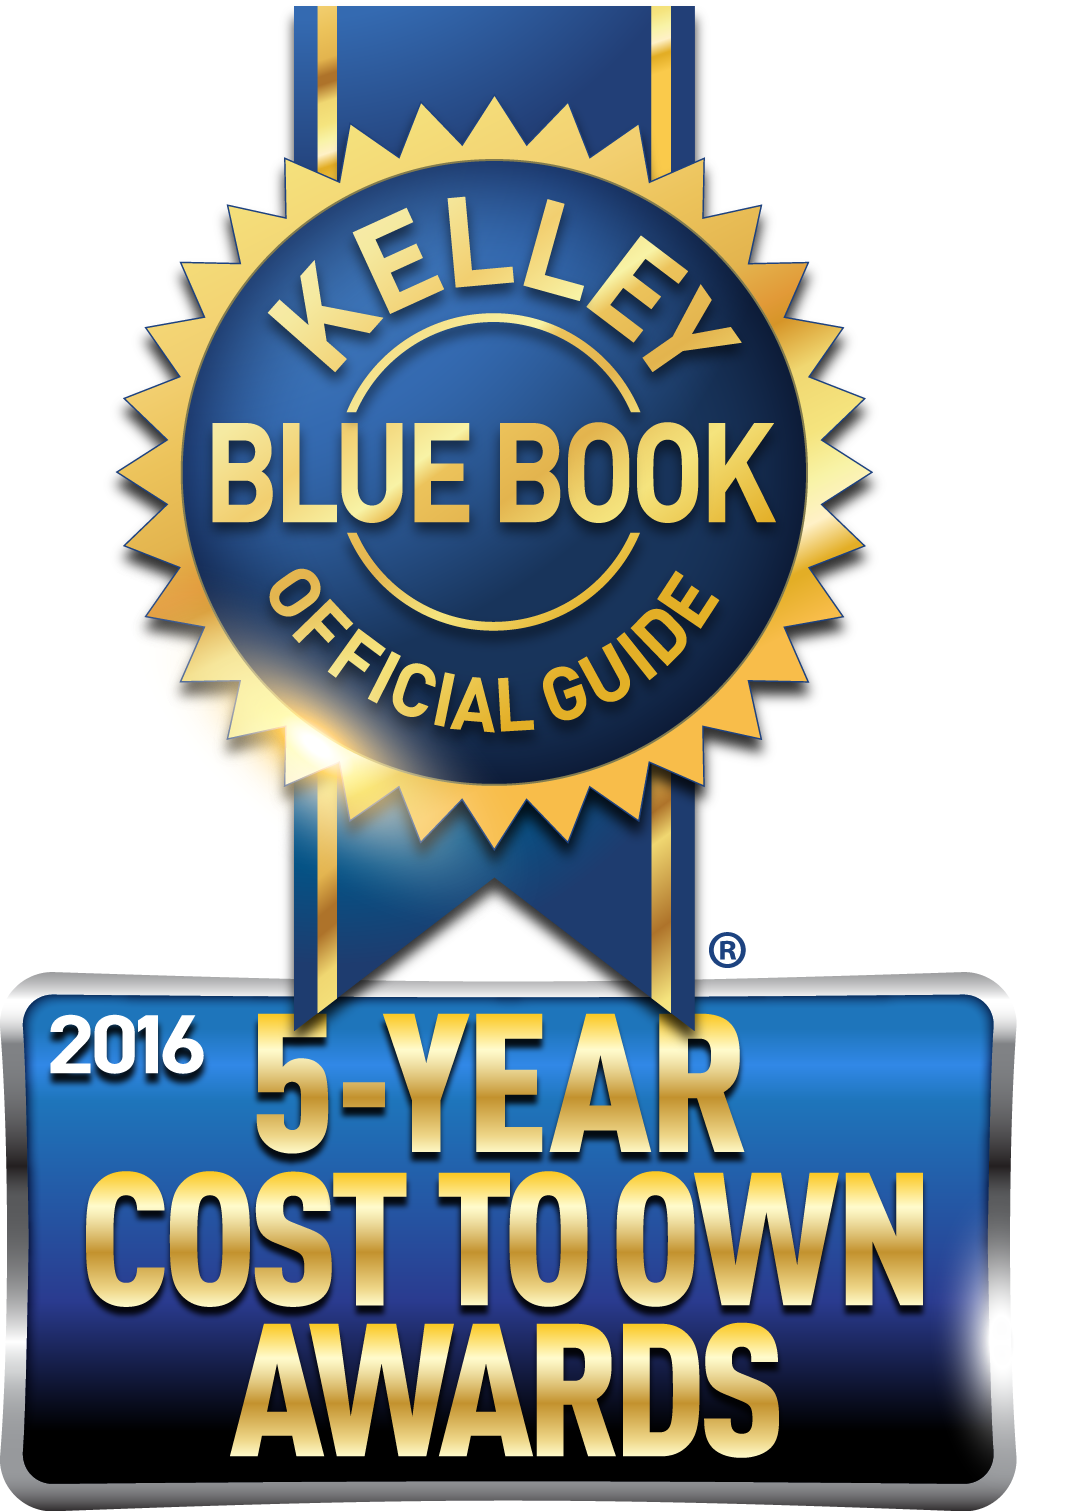 BIGGS CADILLAC NEWS and REVIEWS: Buick wins big at the Kelley Blue Book - 5-Year Cost to Own Awards